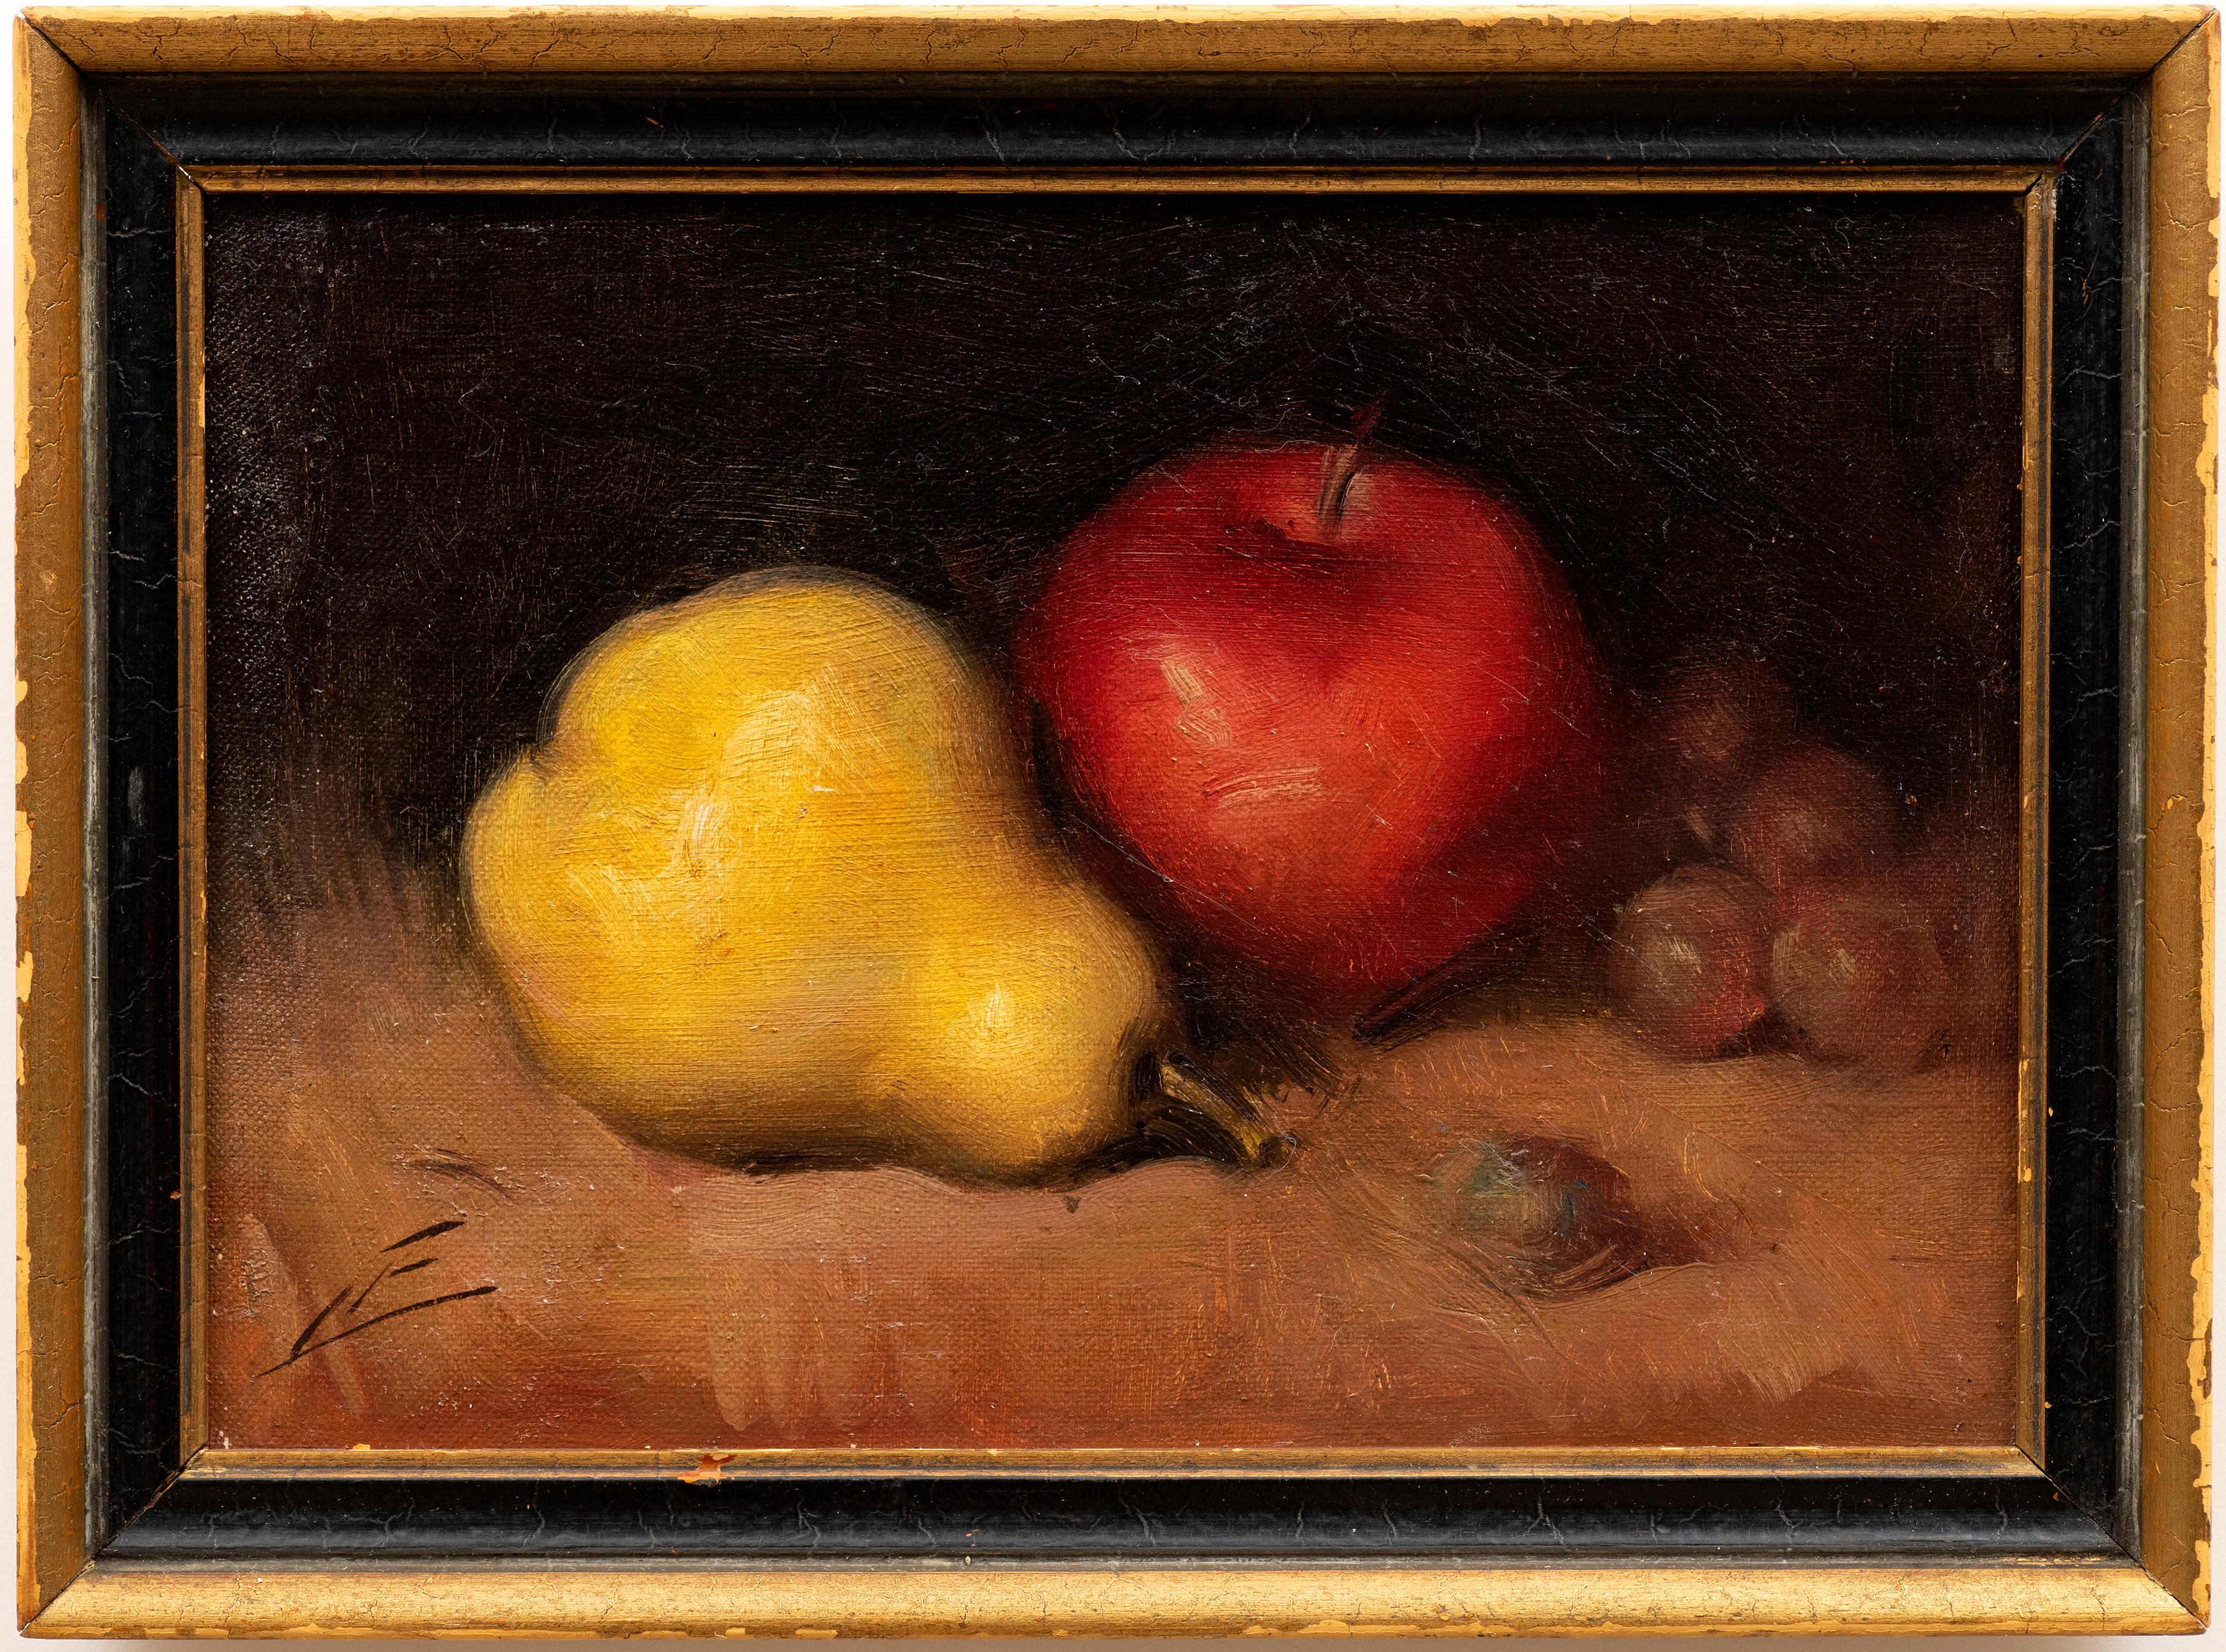 An American Still Life of an Apple, Pear and Grapes circa 1880s